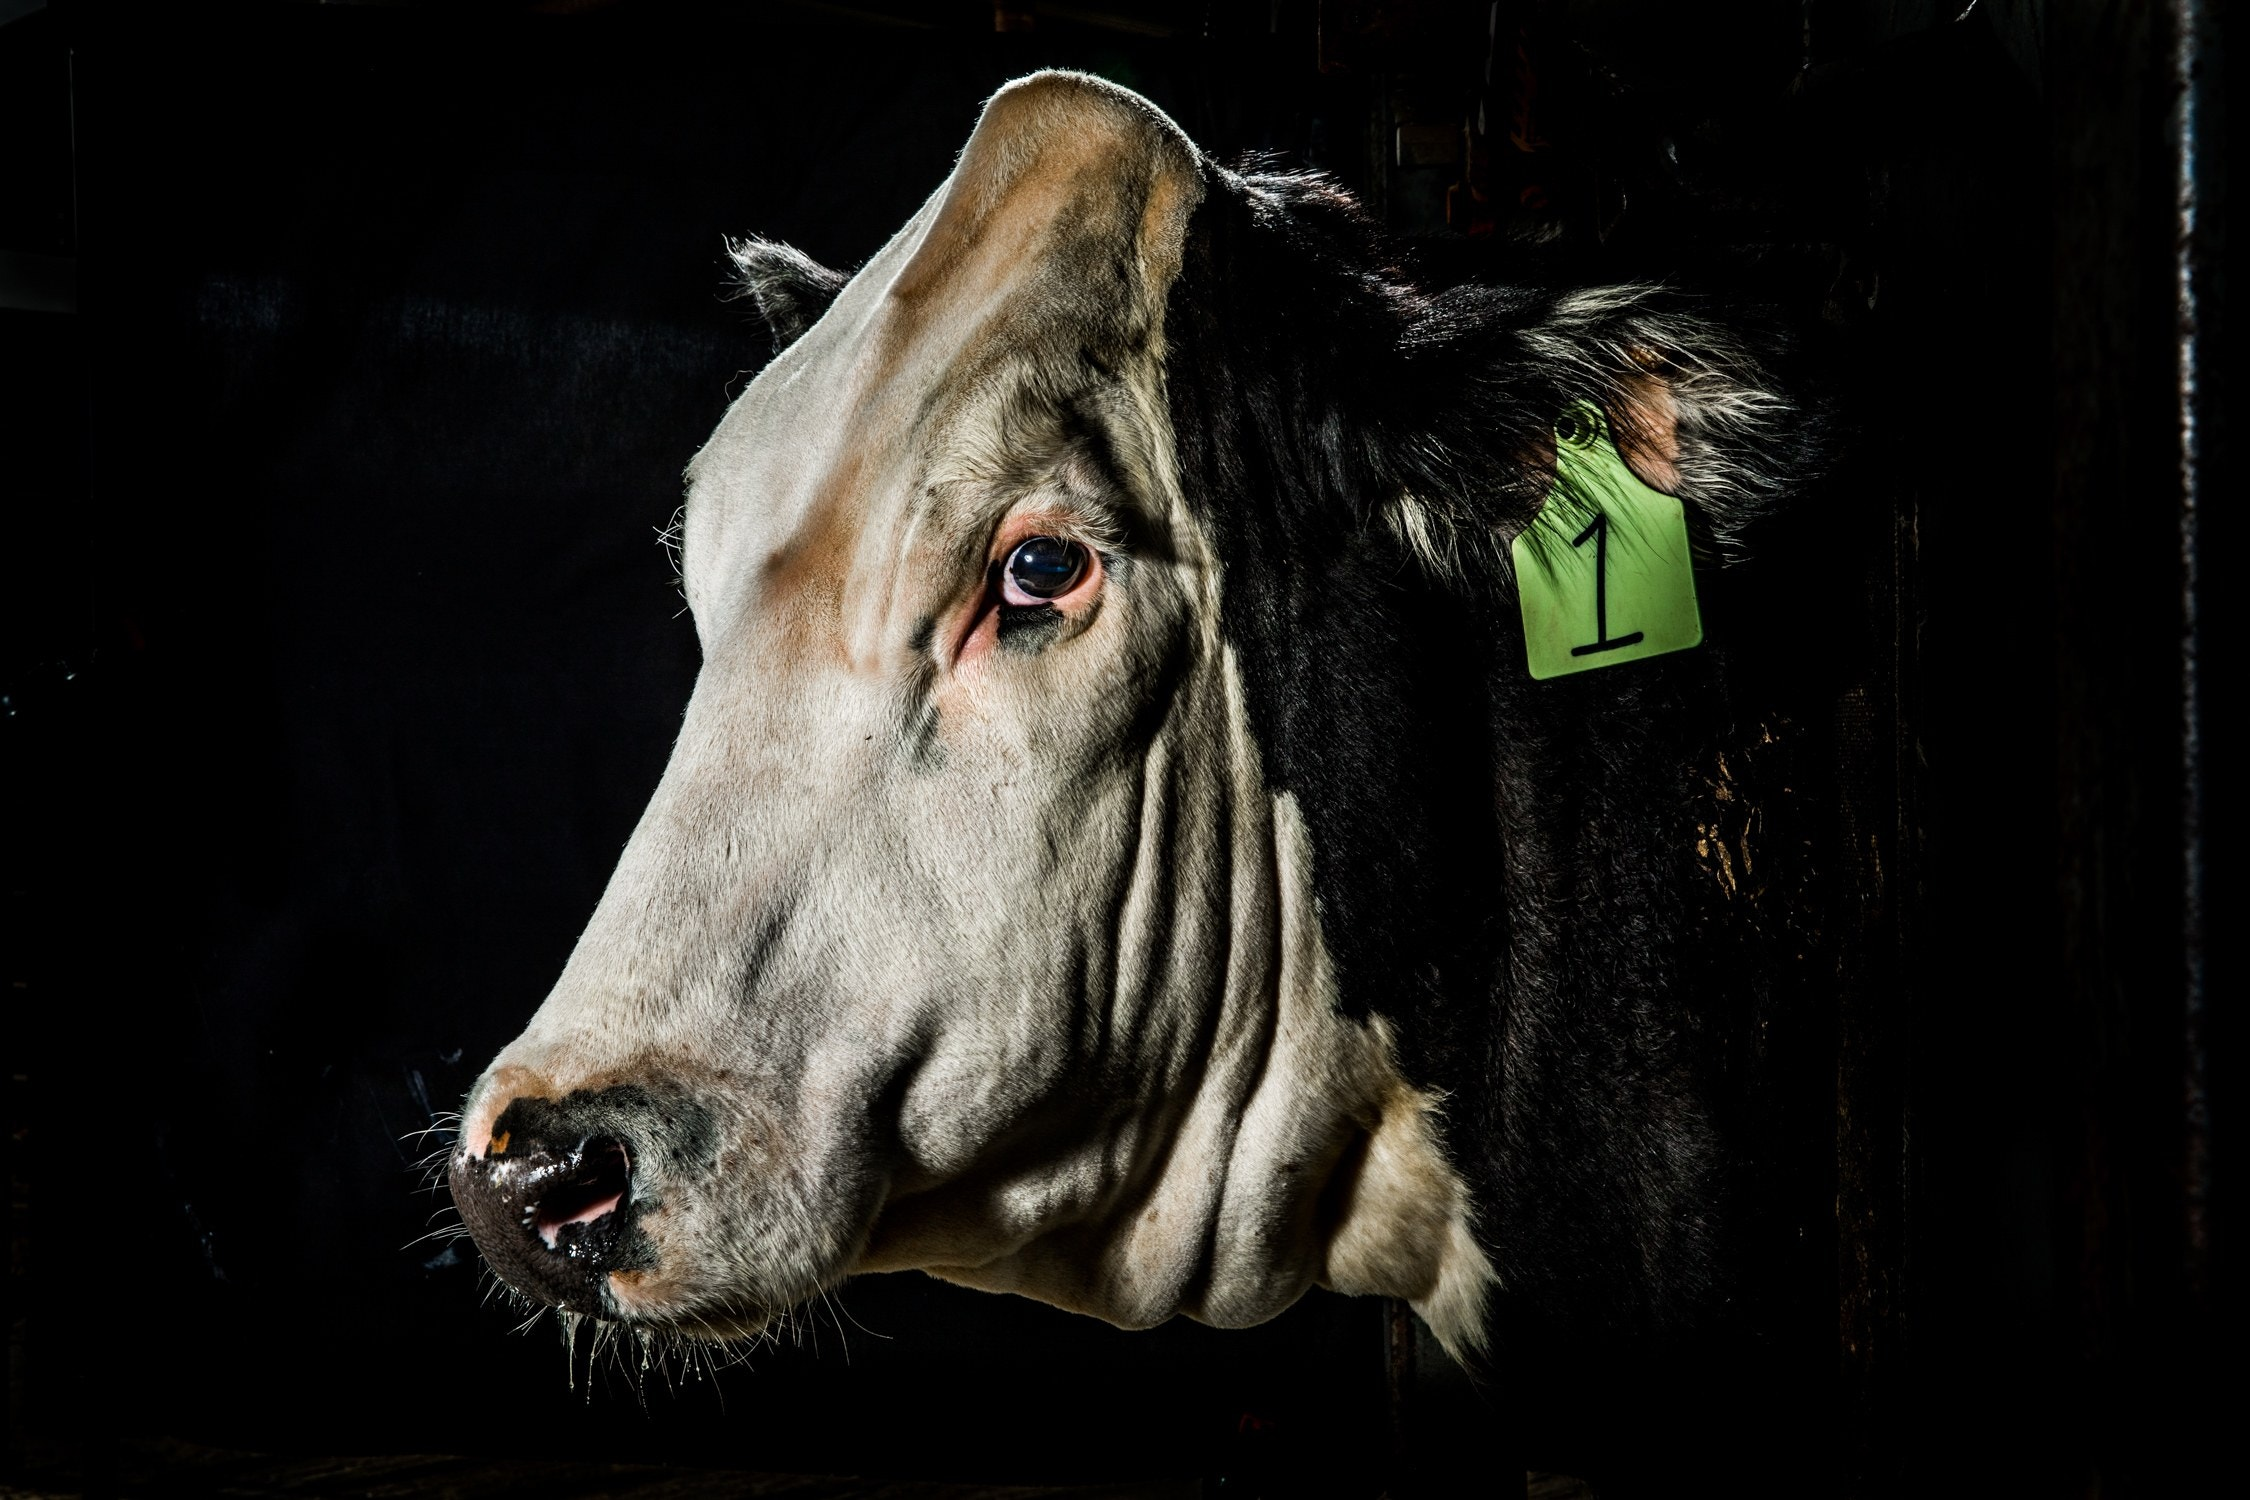 A Cow, a Controversy, and a Dashed Dream of More Humane.